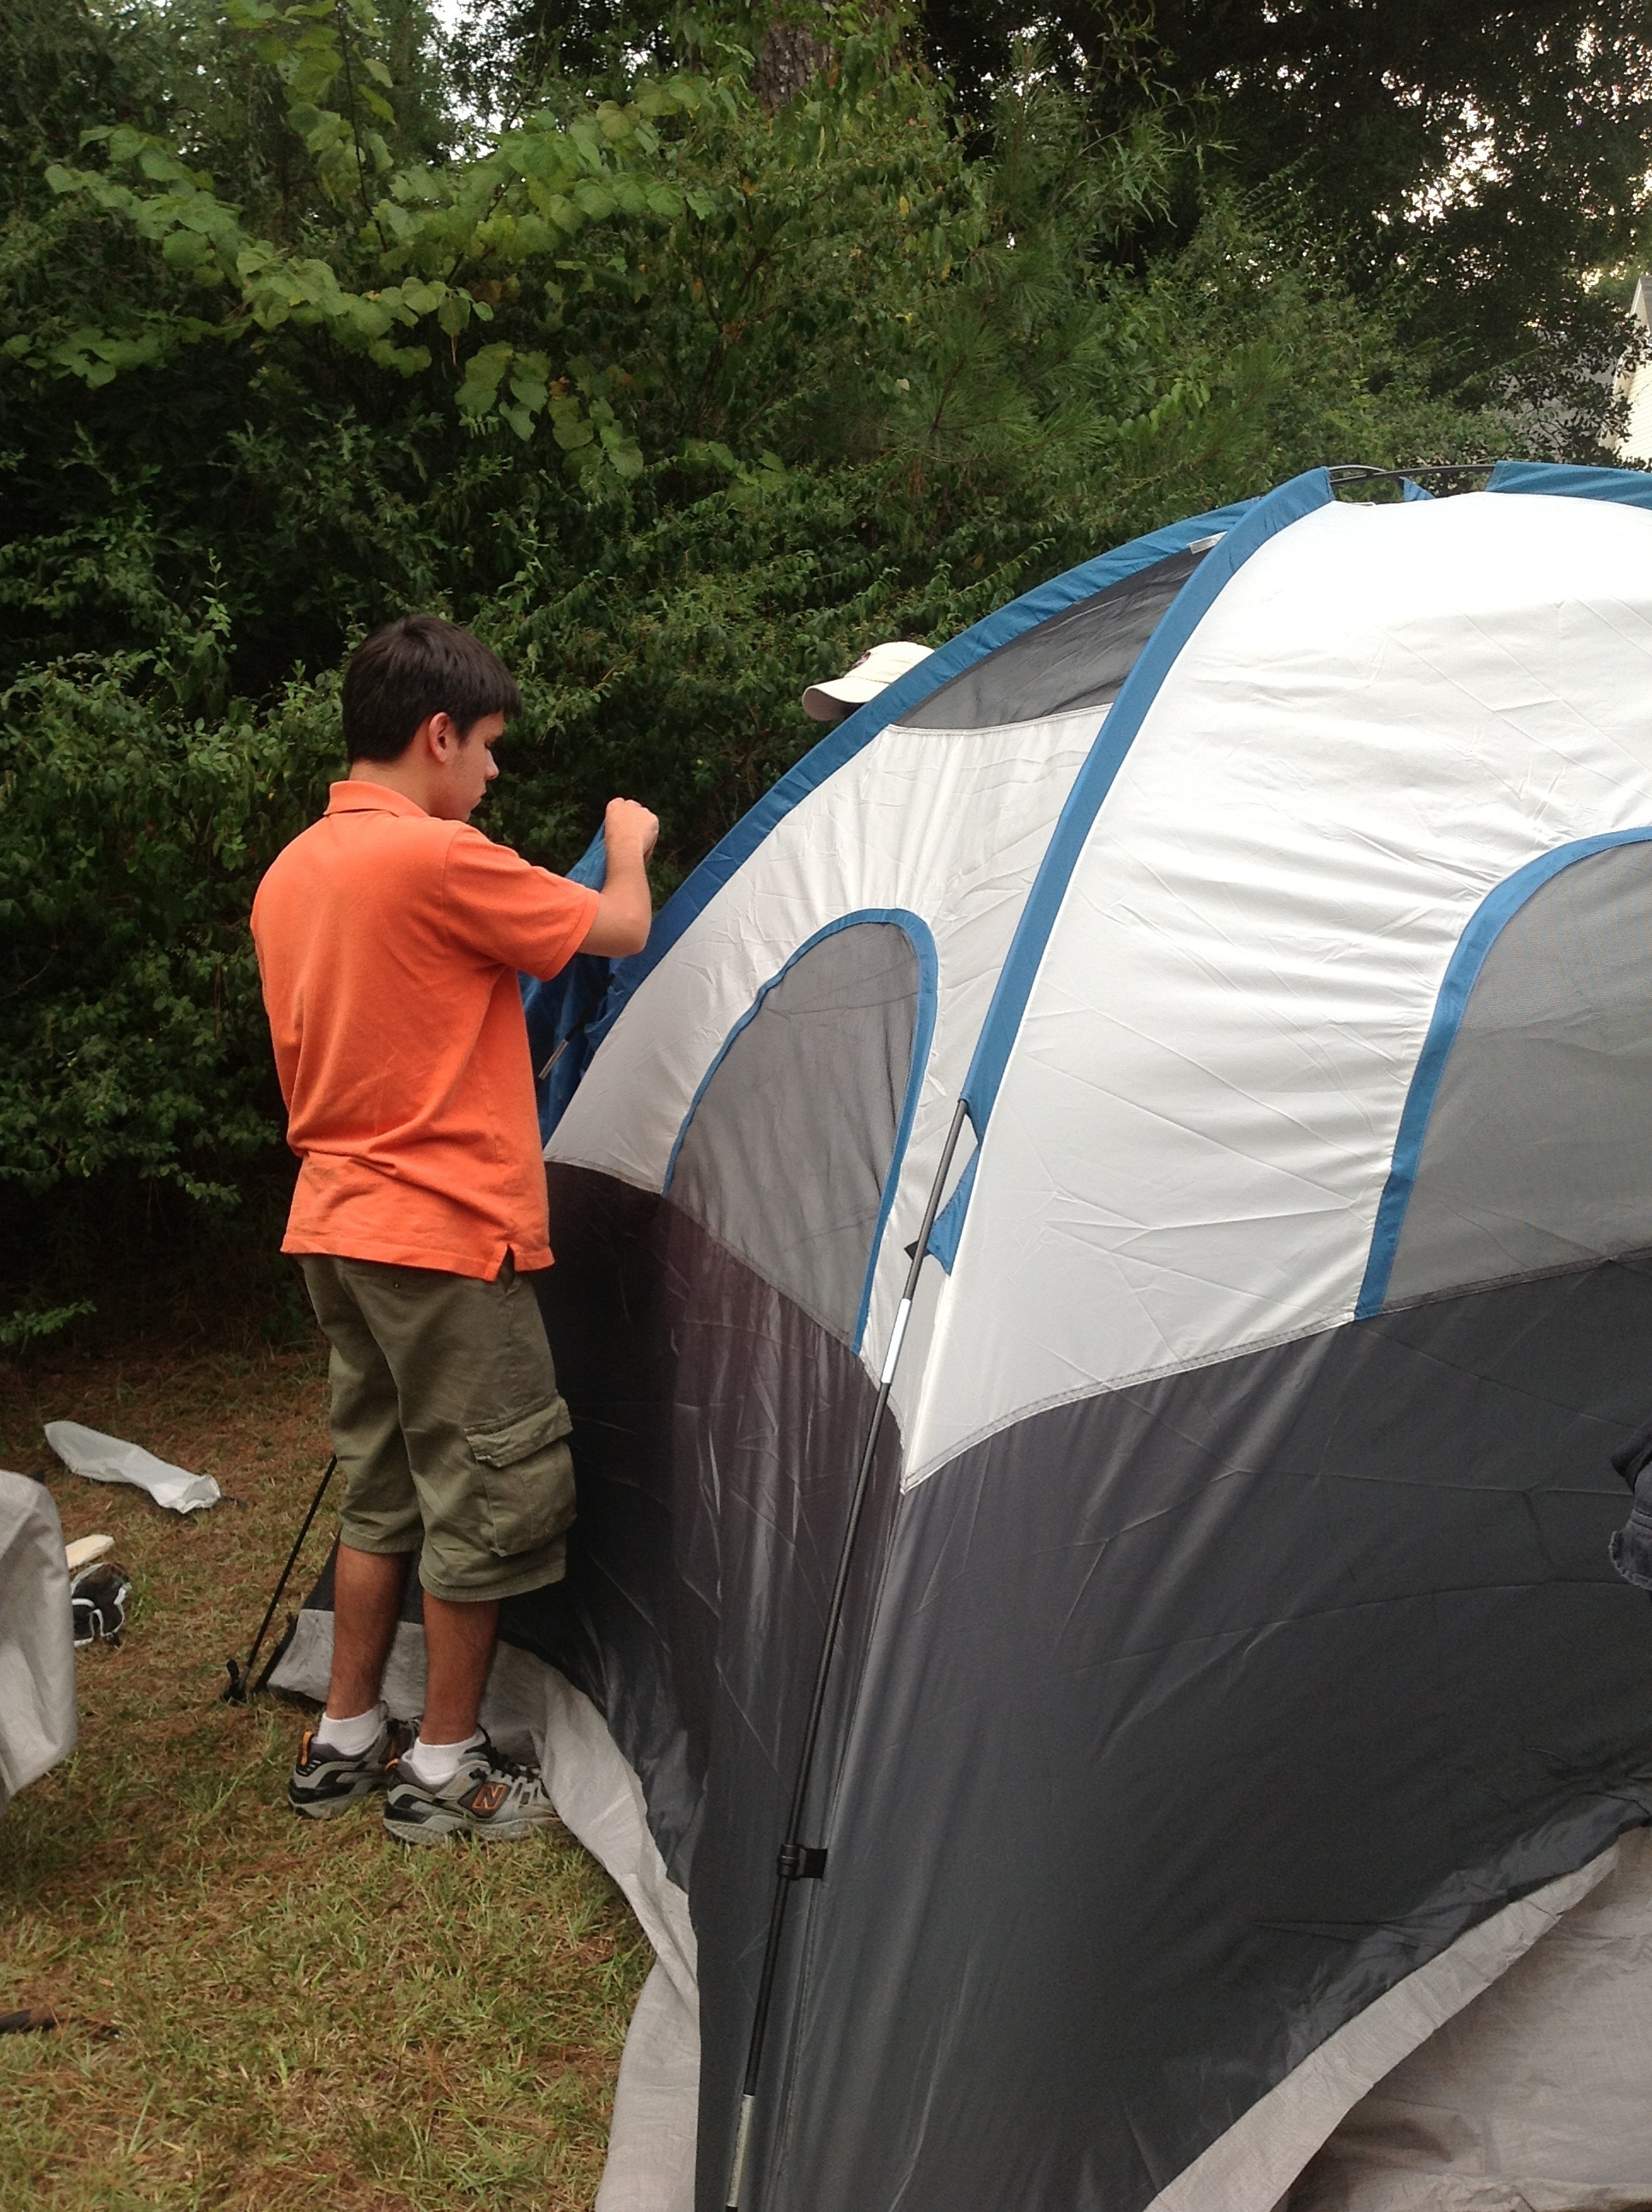 Stephen helps to build a tent